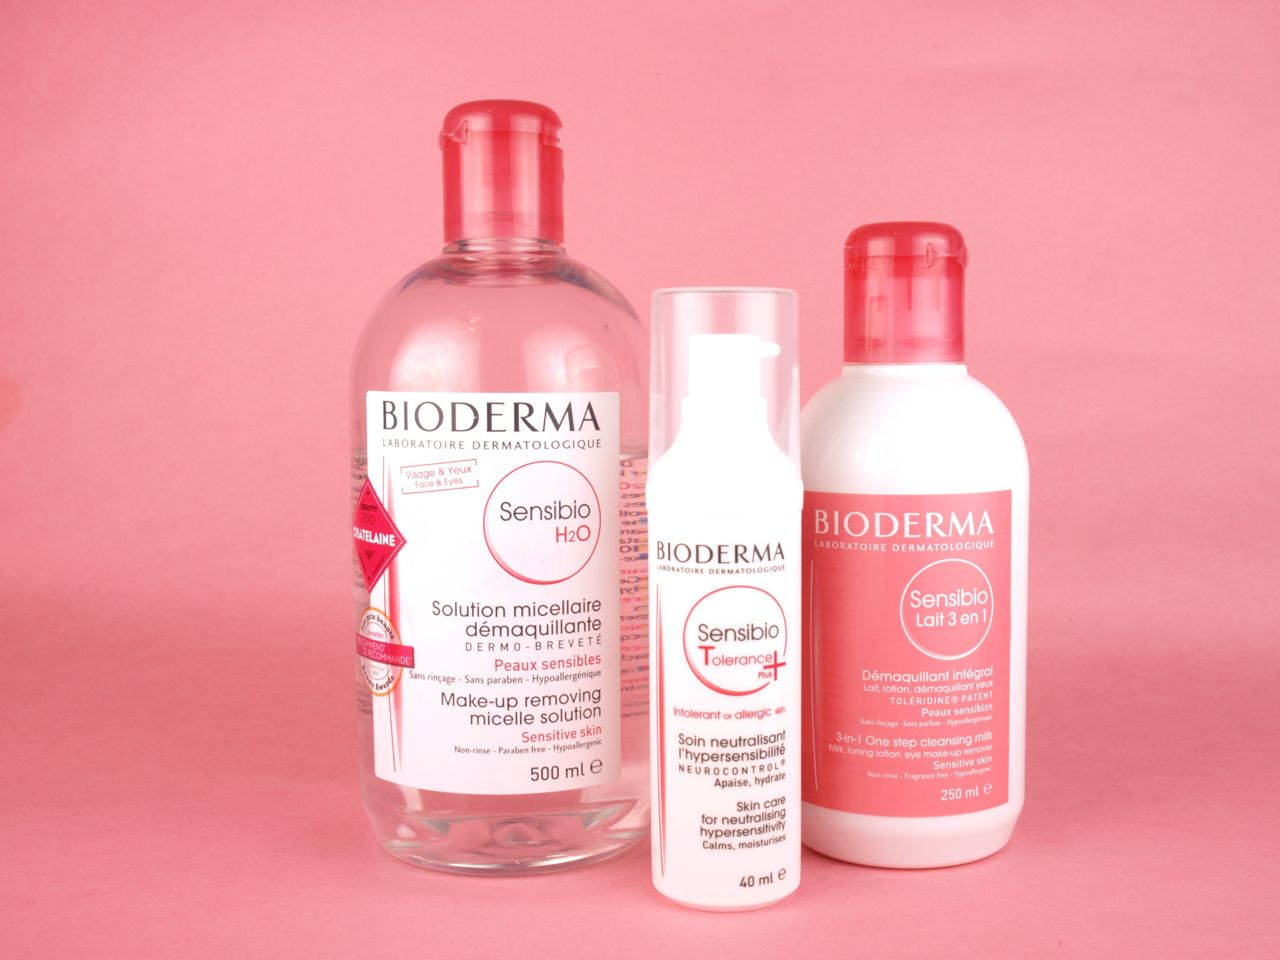 Bioderma Sensibio H2O, Cleansing Milk 3-in-1 & Tolerance Plus: Review